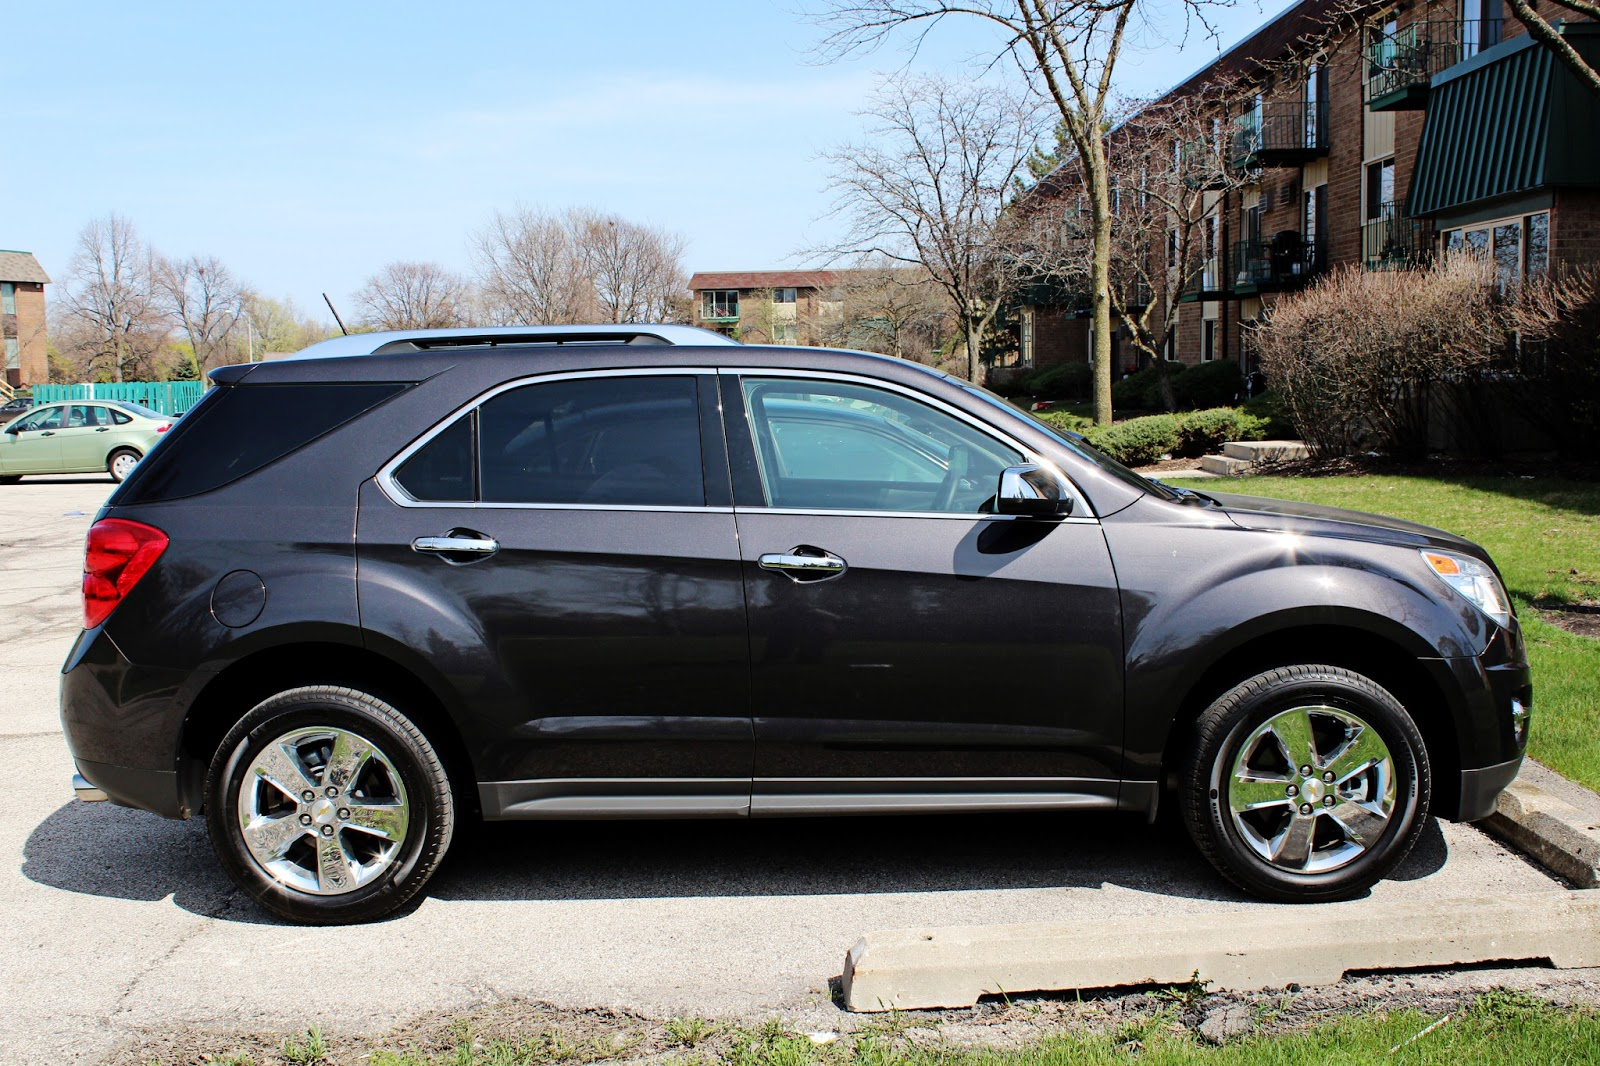 chevy equinox experience the accidental wallflower. Black Bedroom Furniture Sets. Home Design Ideas